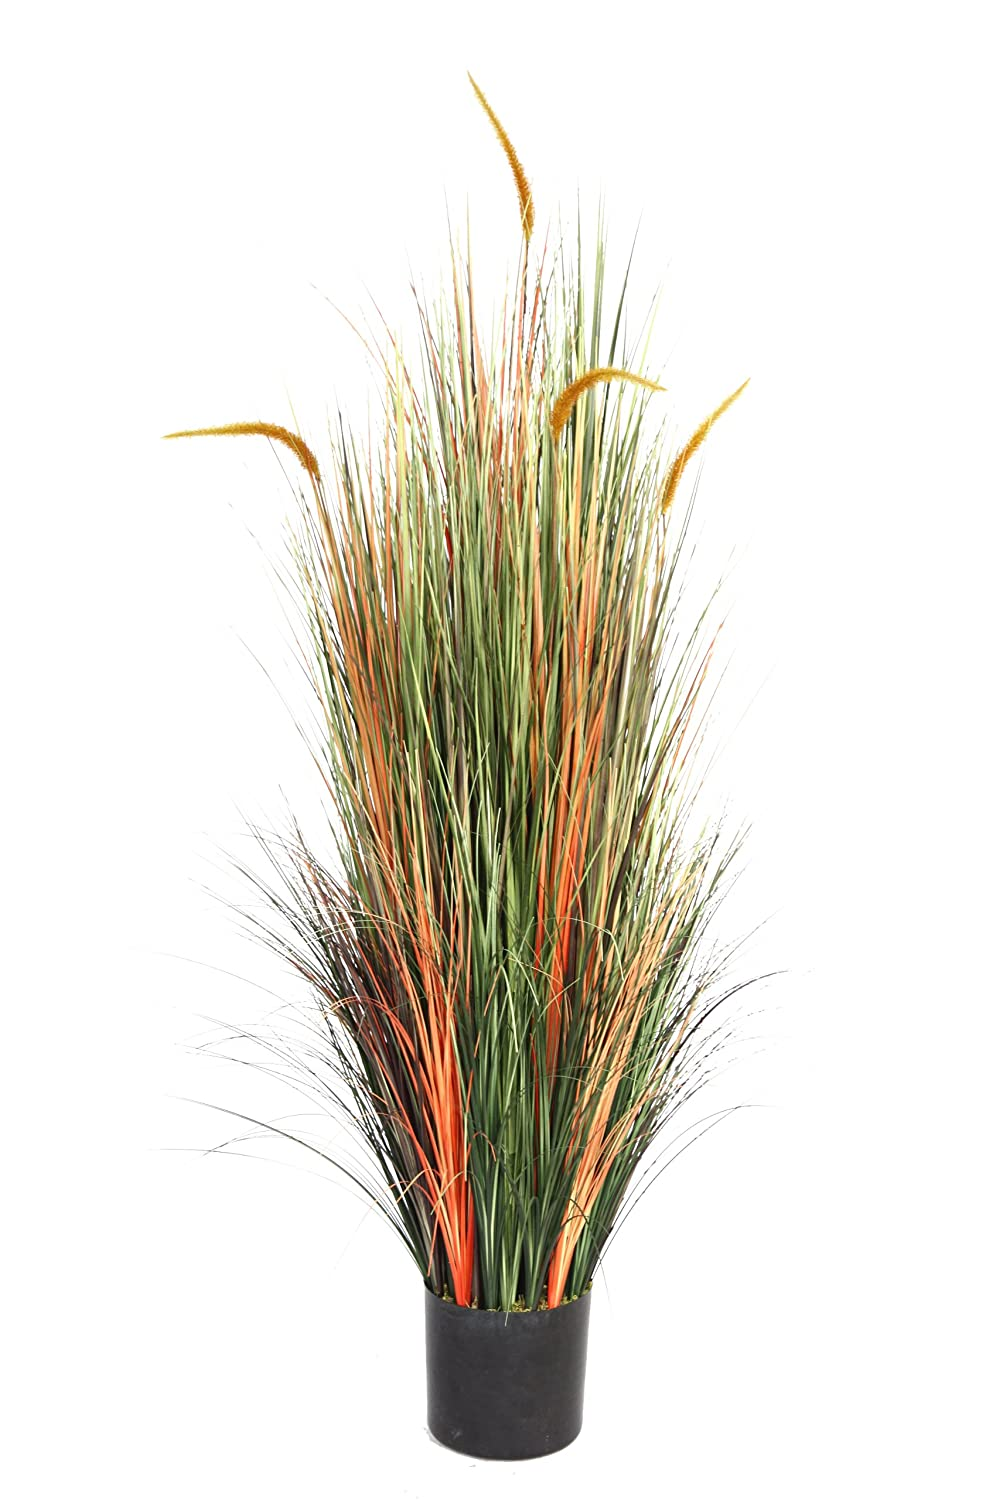 Silks pothos desk top plant in pot amp reviews wayfair - Amazon Com Laura Ashley 5 Foot Tall Onion Grass With Cattails Home Kitchen